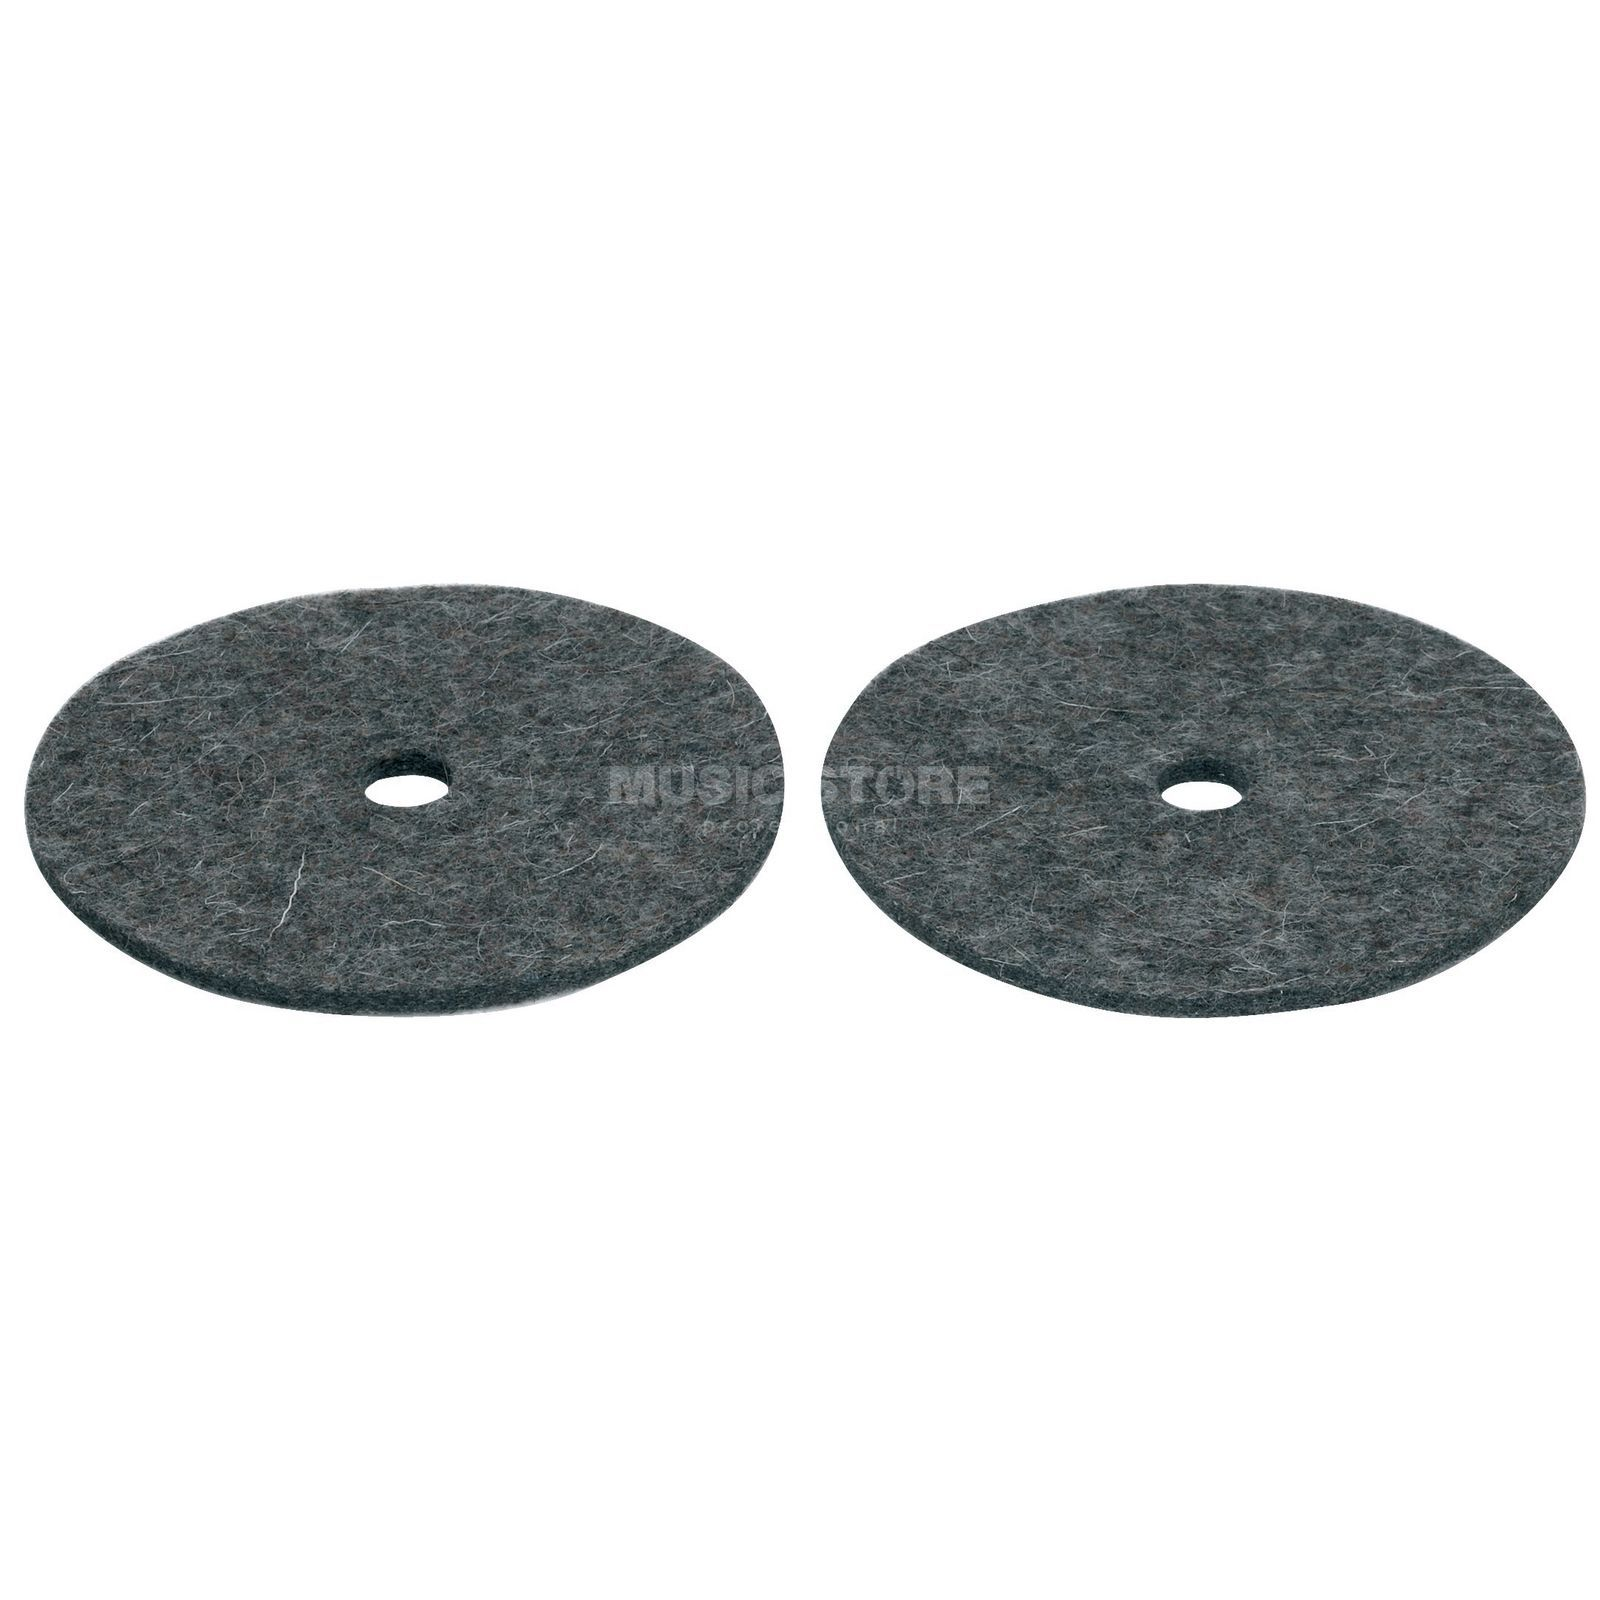 Paiste Felt Pads f. Concert & Marching Cymbal Product Image